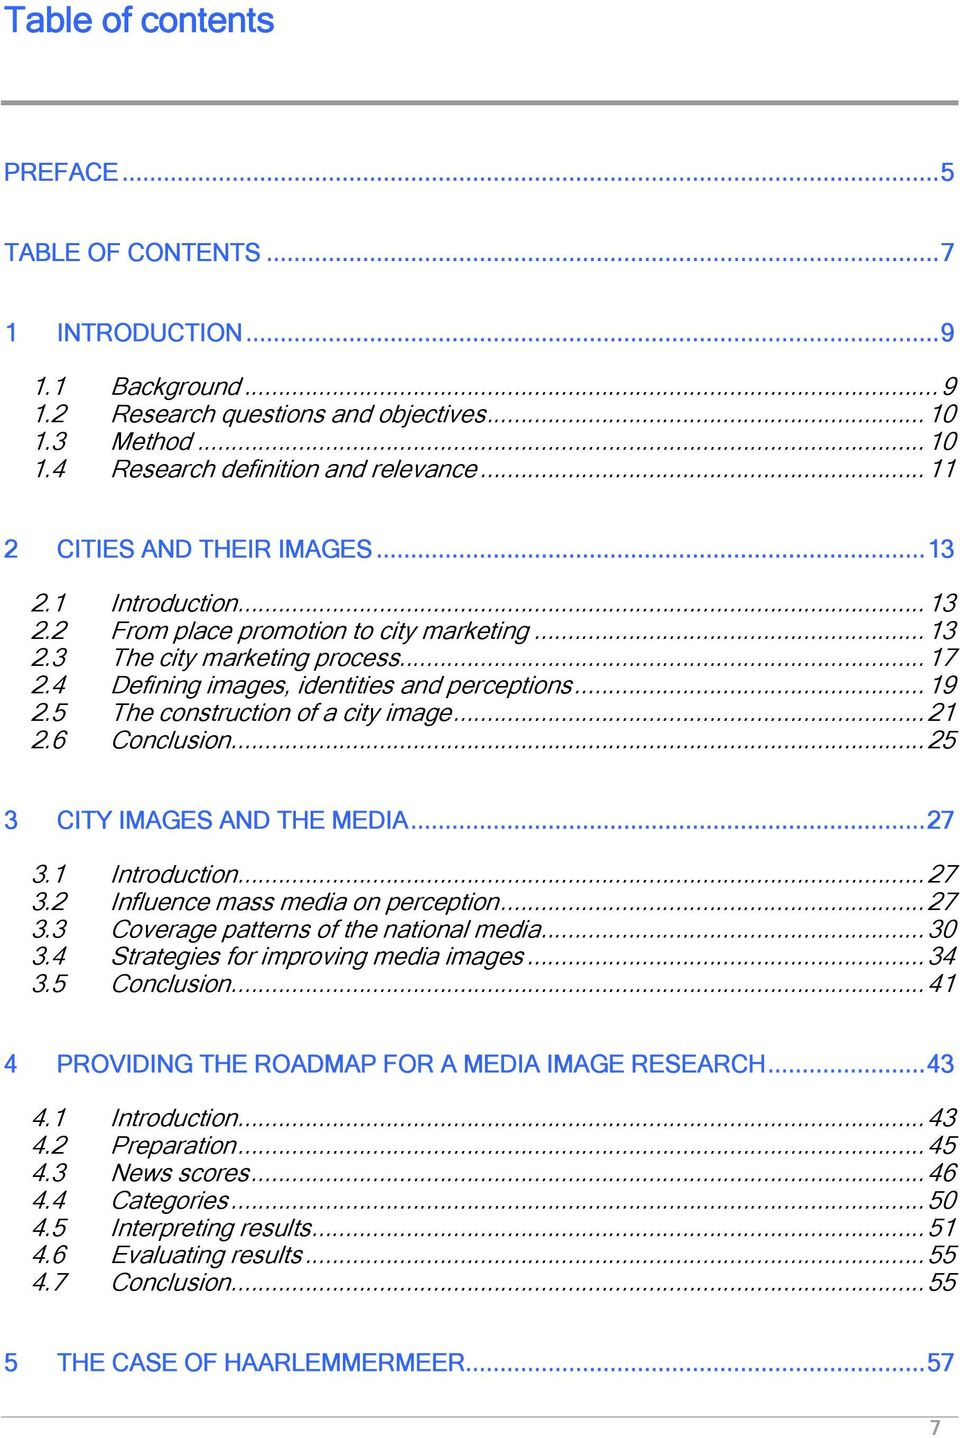 5 The construction of a city image...21 2.6 Conclusion...25 3 CITY IMAGES AND THE MEDIA...27 3.1 Introduction...27 3.2 Influence mass media on perception...27 3.3 Coverage patterns of the national media.